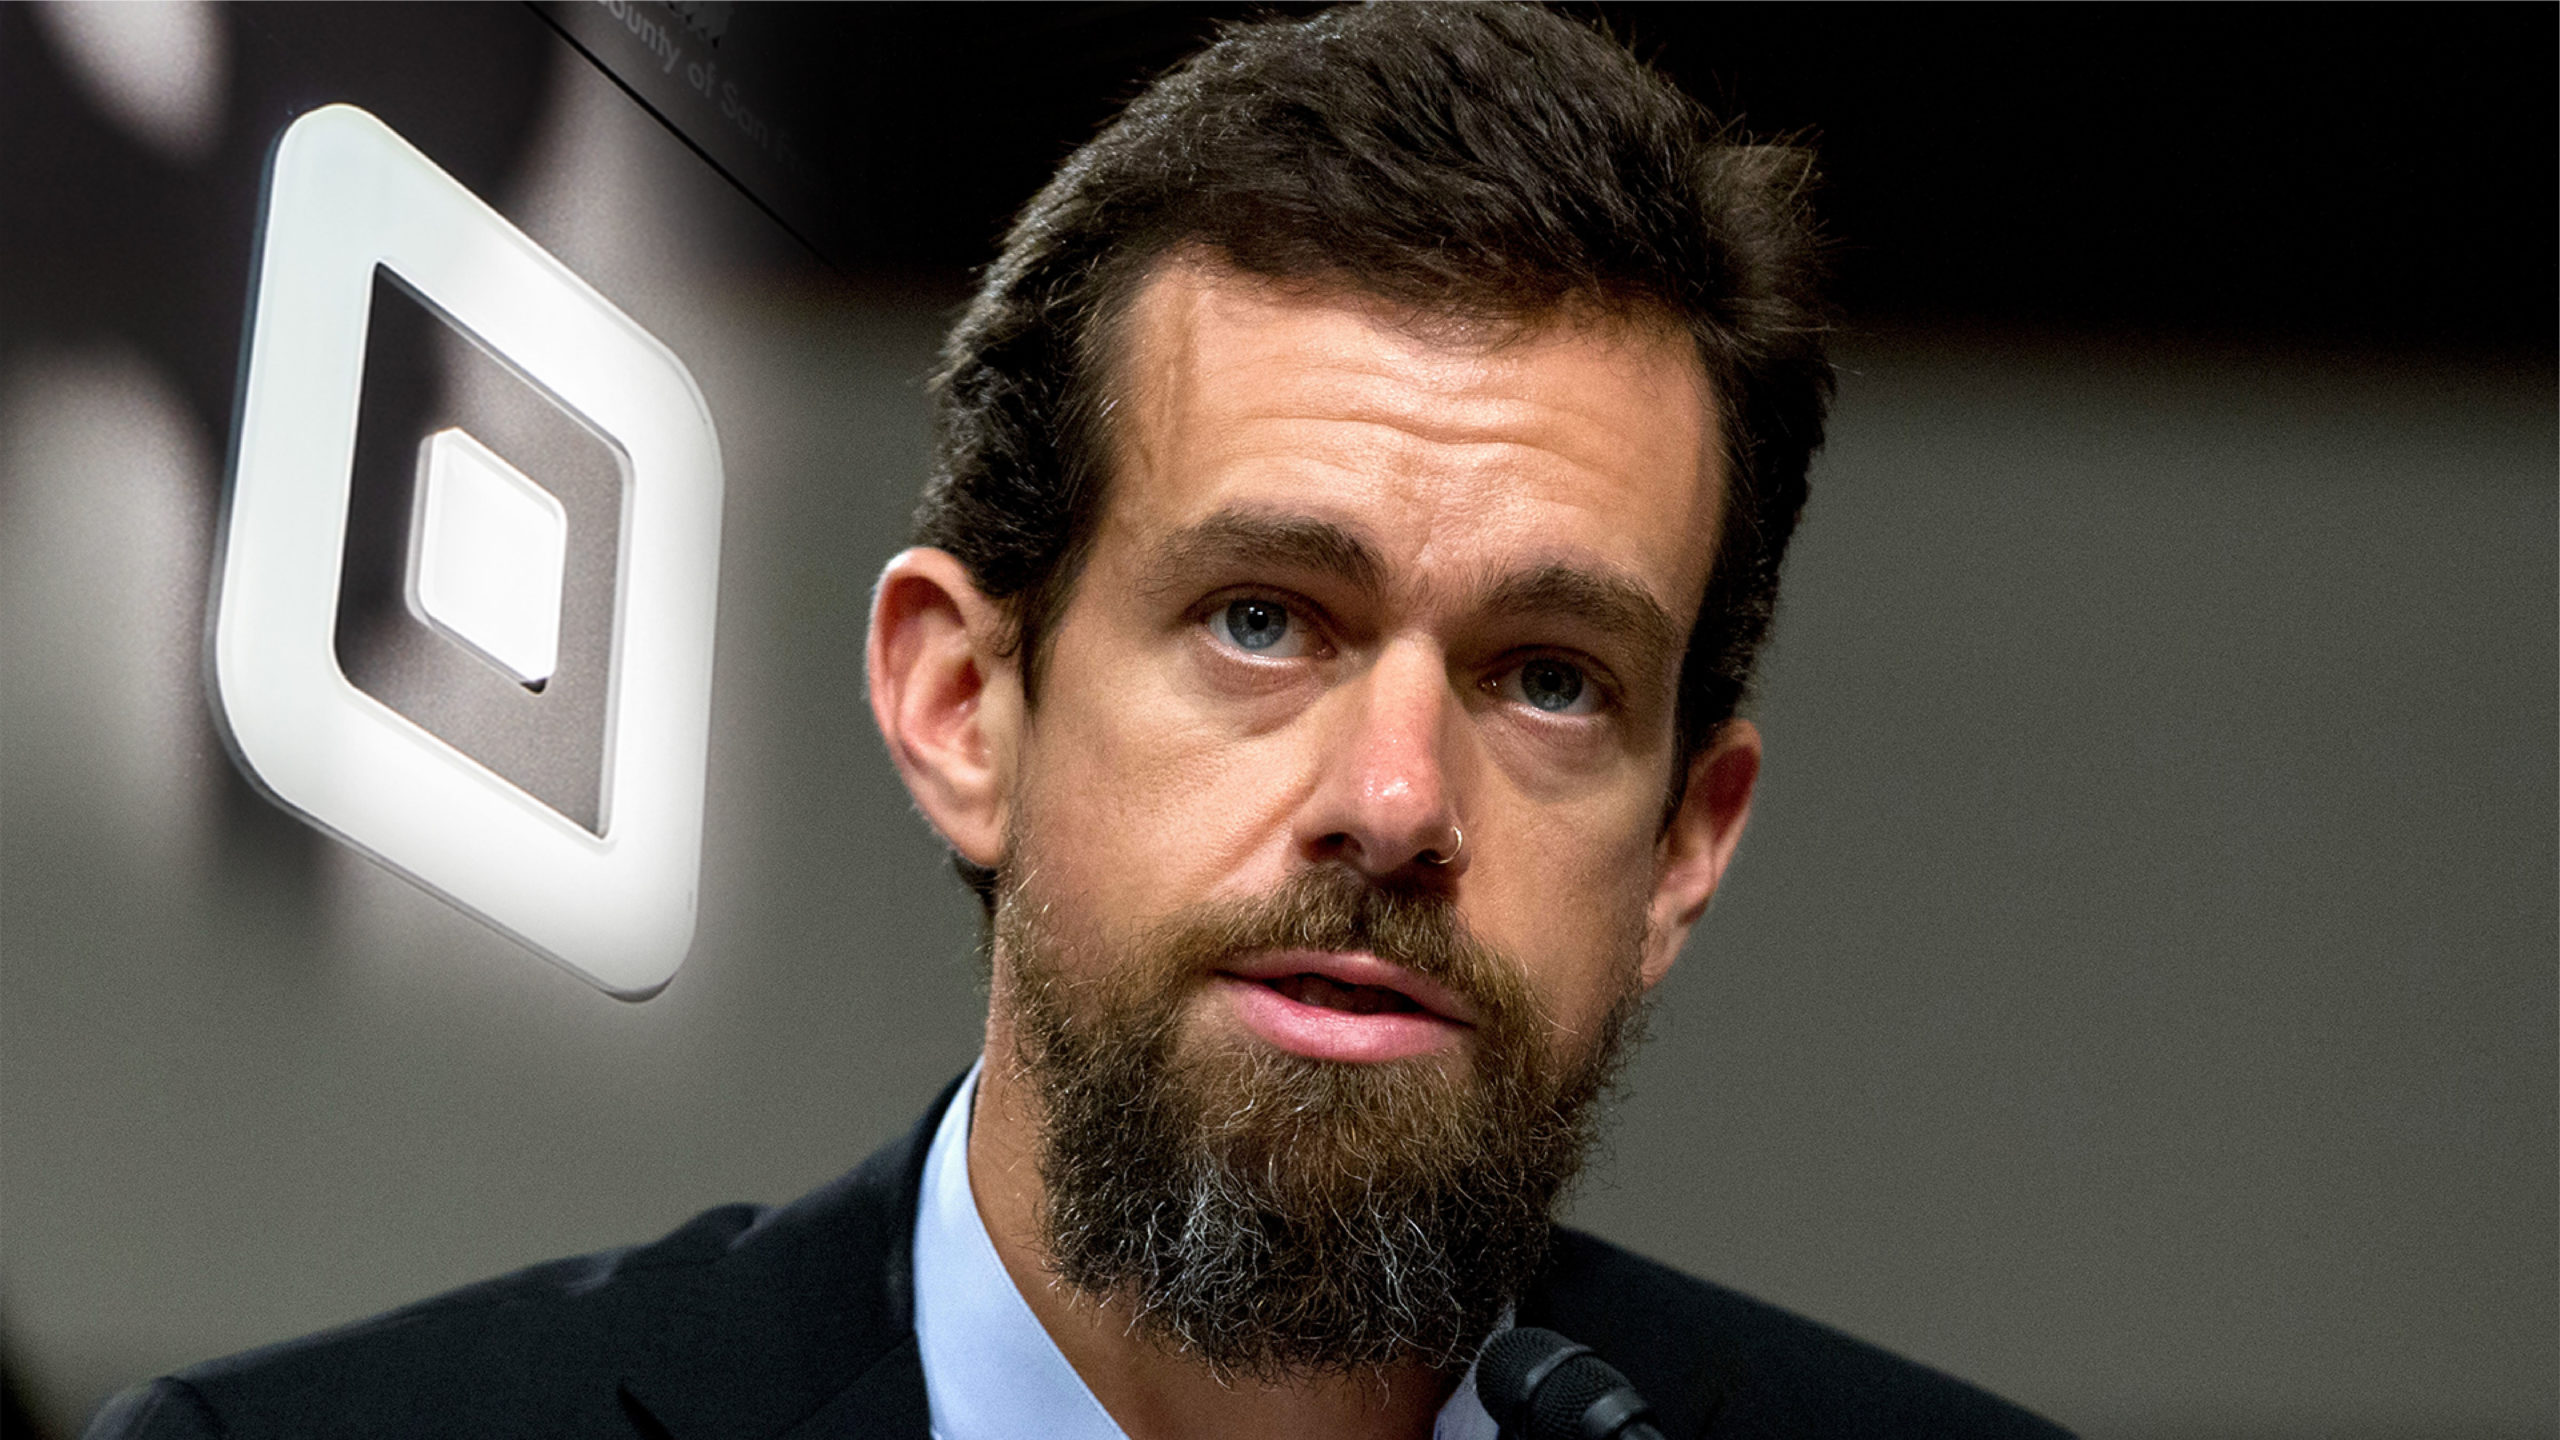 Square CEO Jack Dorsey Buys Bitcoin